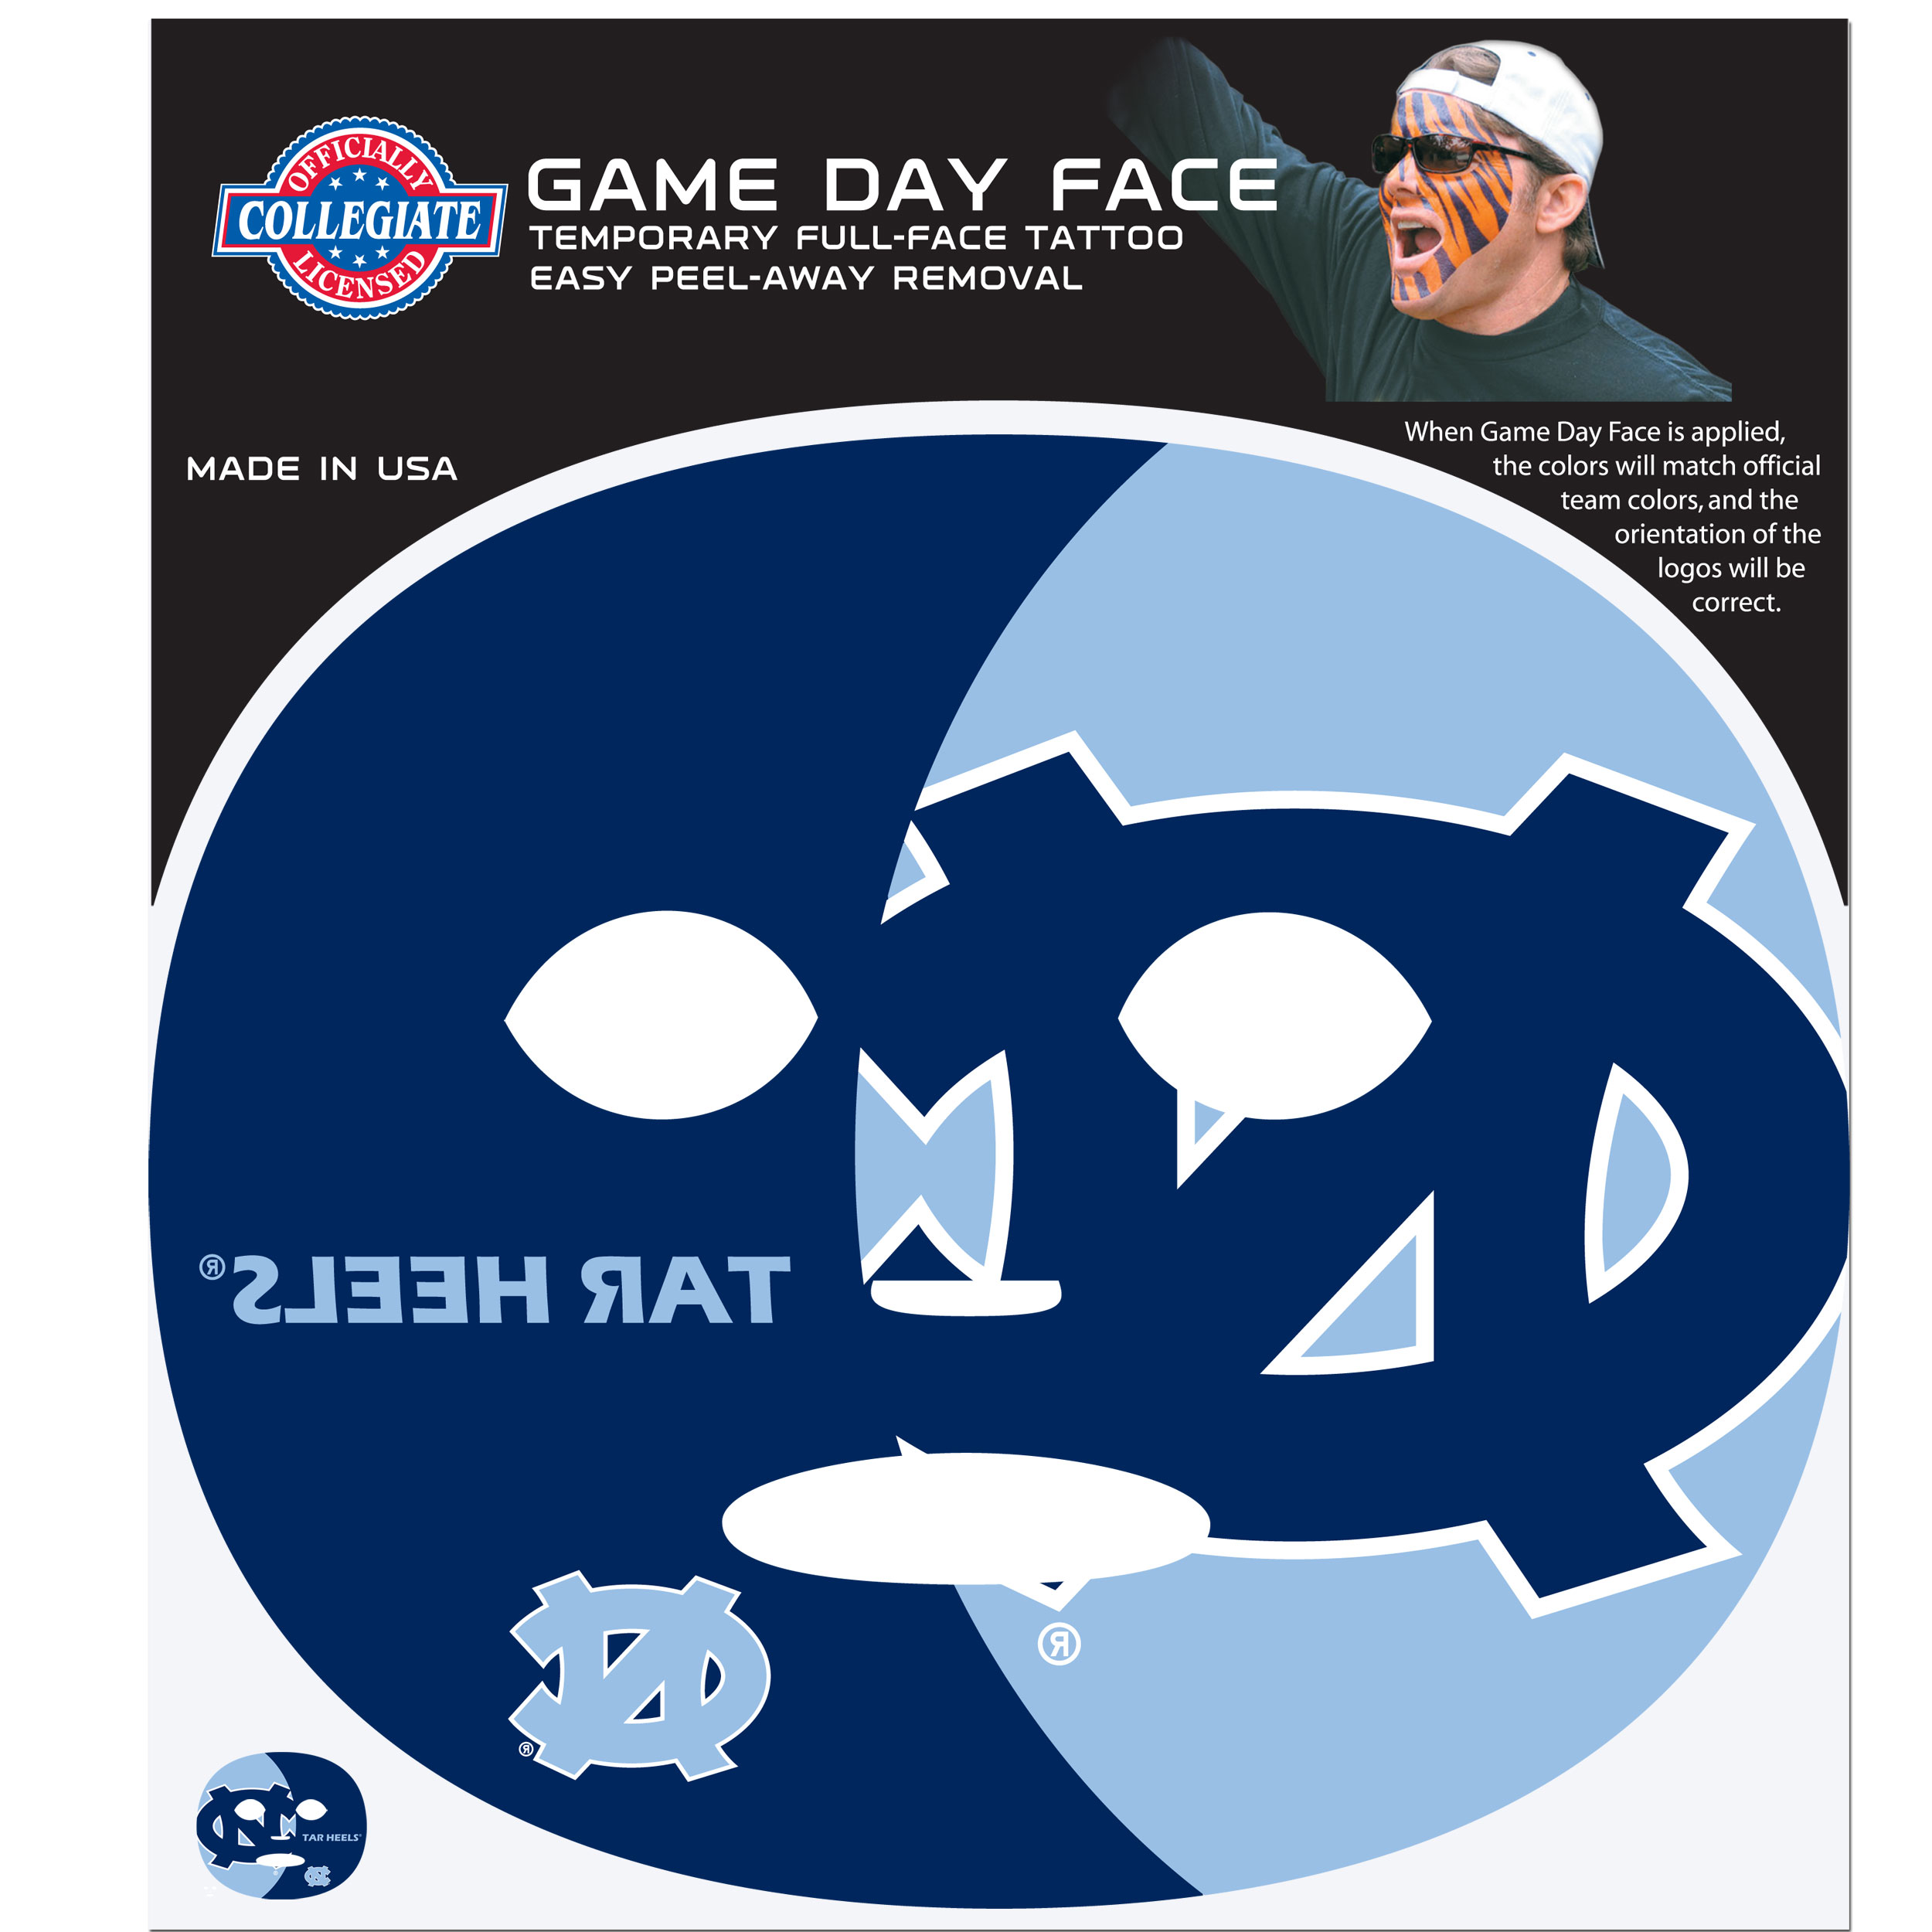 N. Carolina Tar Heels Set of 4 Game Day Faces - No better way to show your team pride than by painting your face. Siskiyou's Game Day Face Temporary Tattoo isn't your typical face paint. It is a water based application that doesn't smudge, smear or sweat off while you're wearing it and easily peels off after you're done celebrating your team's big Win! The temporary tattoo is large enough to trim down to fit your face. Our Game Day Face Temporary Tattoo's are fun for fans of all ages. You may have seen our product before, these are the same Temporary Face Tattoos as pitched on ABC's Shark Tank.